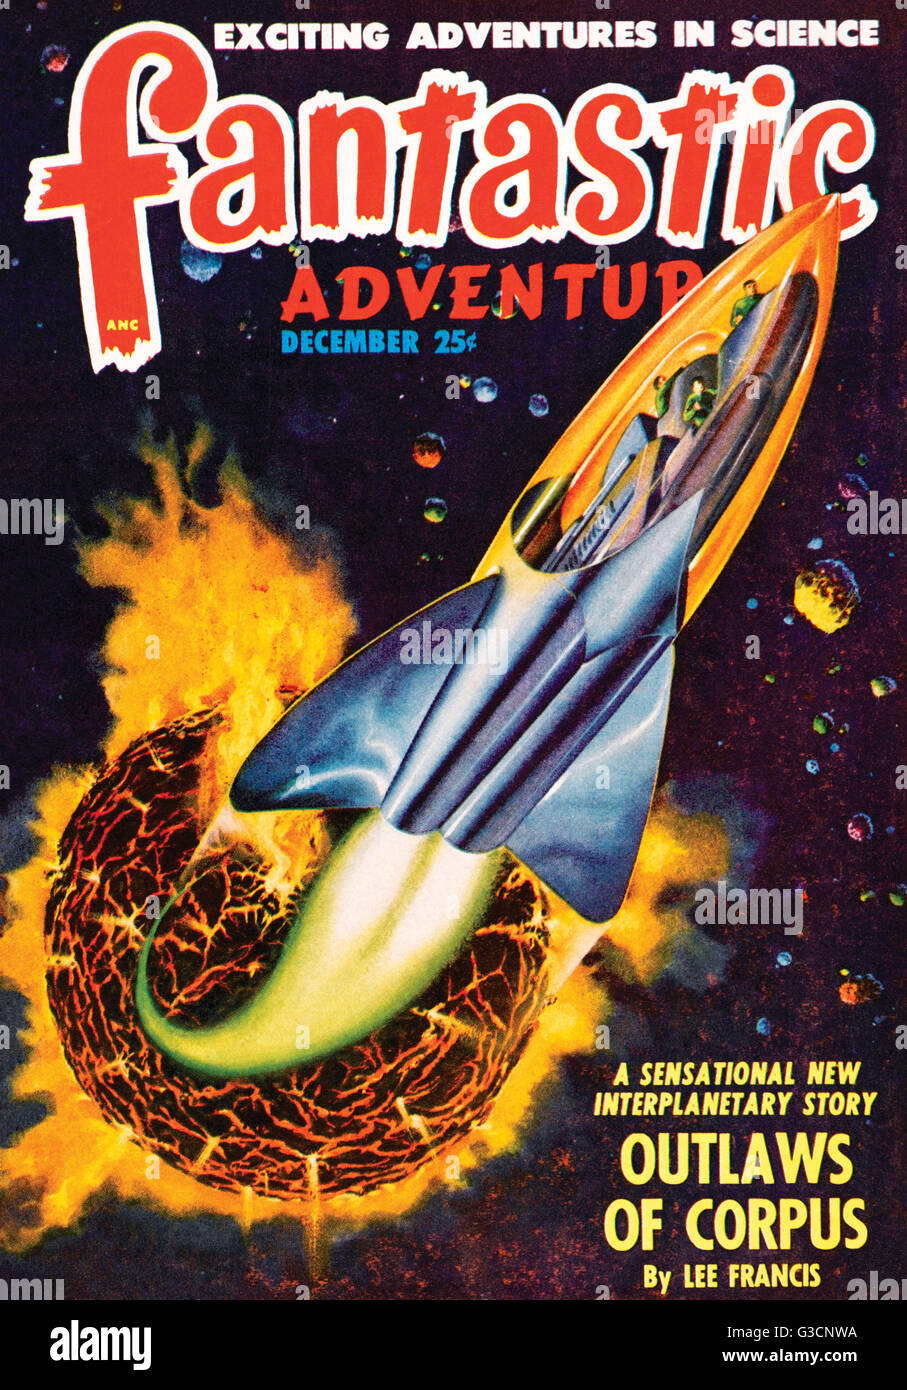 A Spaceship blasts away from a dying planet in this Science Fiction Magazine cover      Date: 1948 - Stock Image